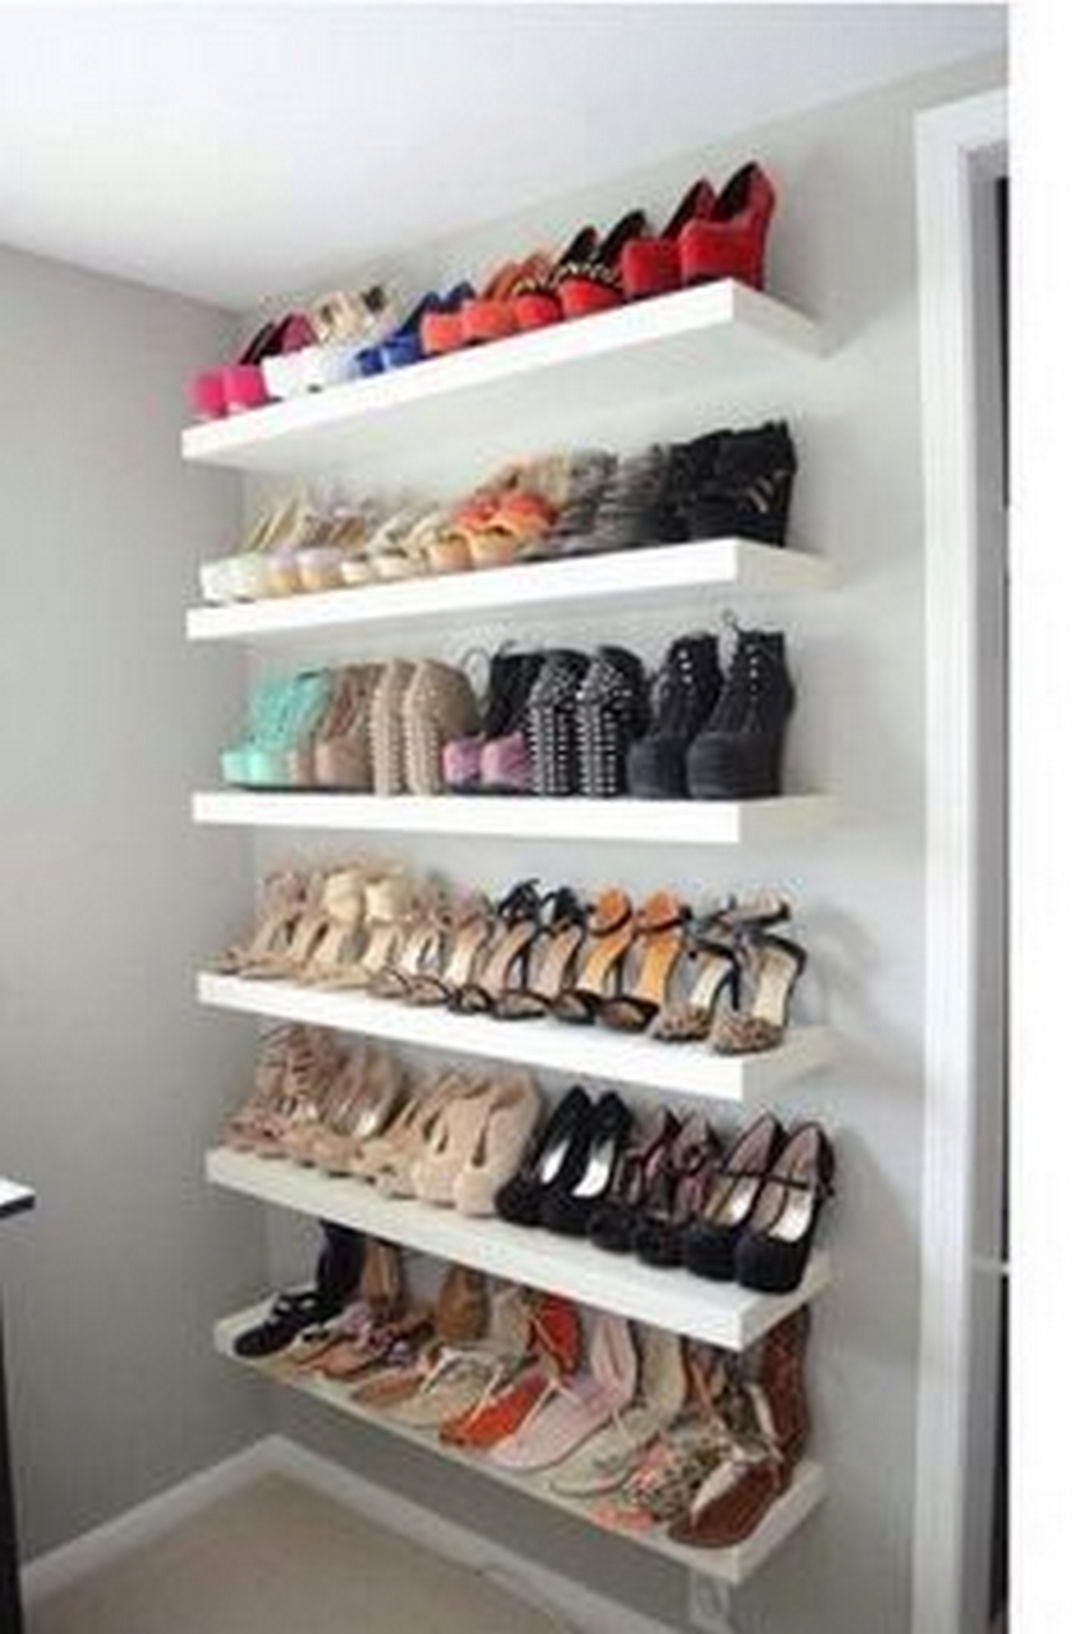 practical shoes rack design ideas for small homes organization floating shelves shoe storage brilliant futuristarchitecture white bathroom drawers affordable home office furniture